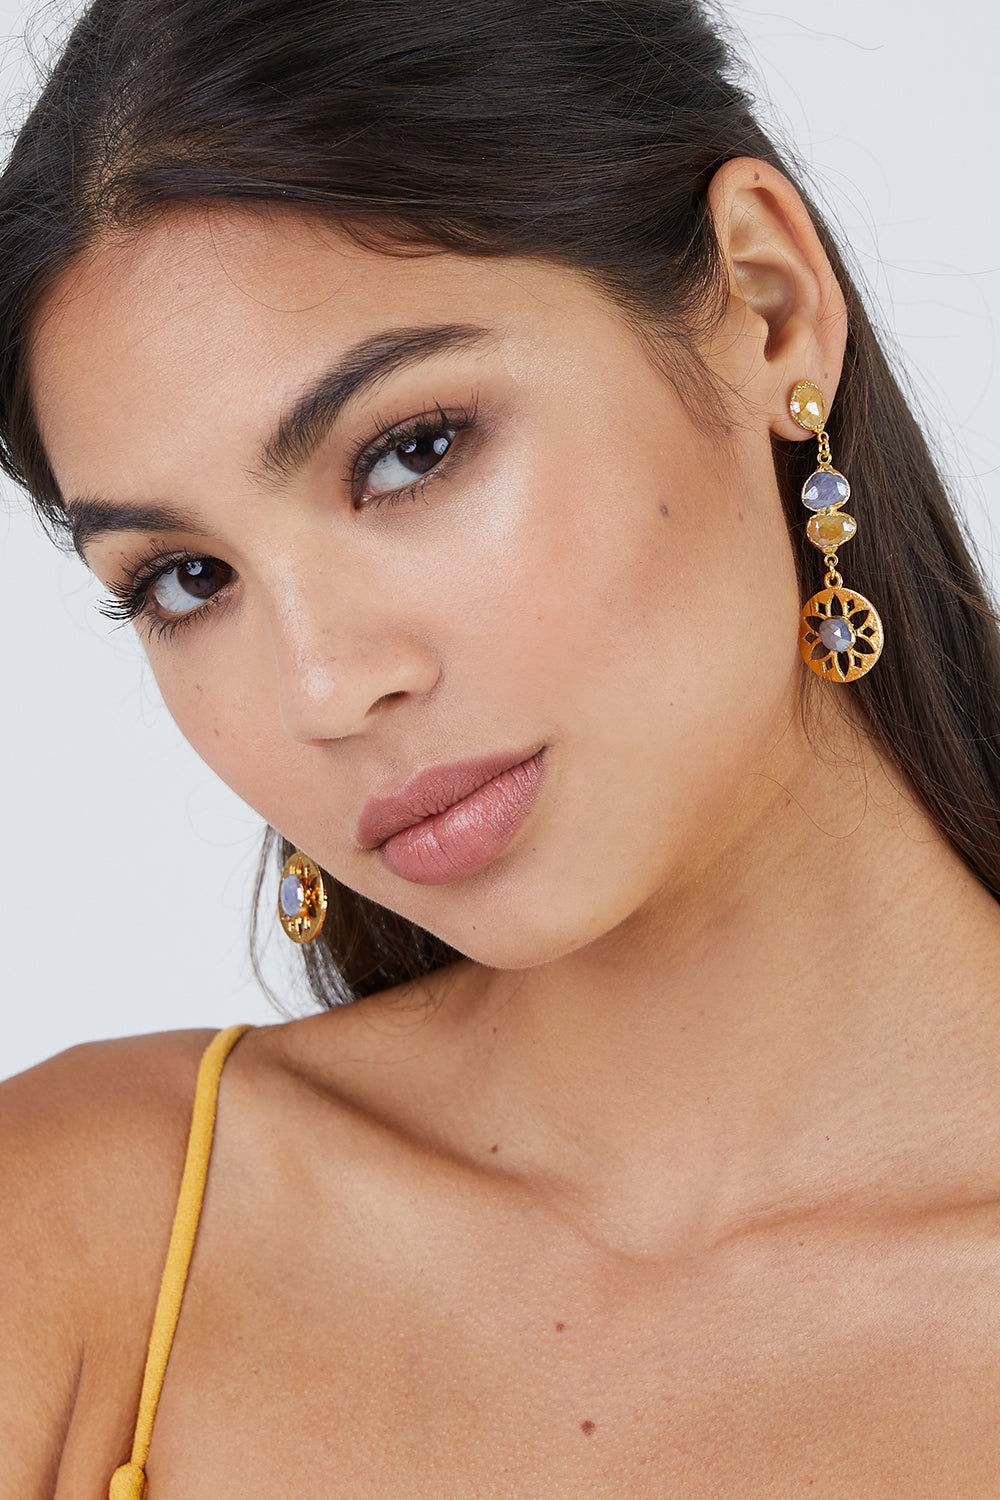 LUX DIVINE Olympia Earrings - Yellow/Blue Jewelry   Yellow/Blue 